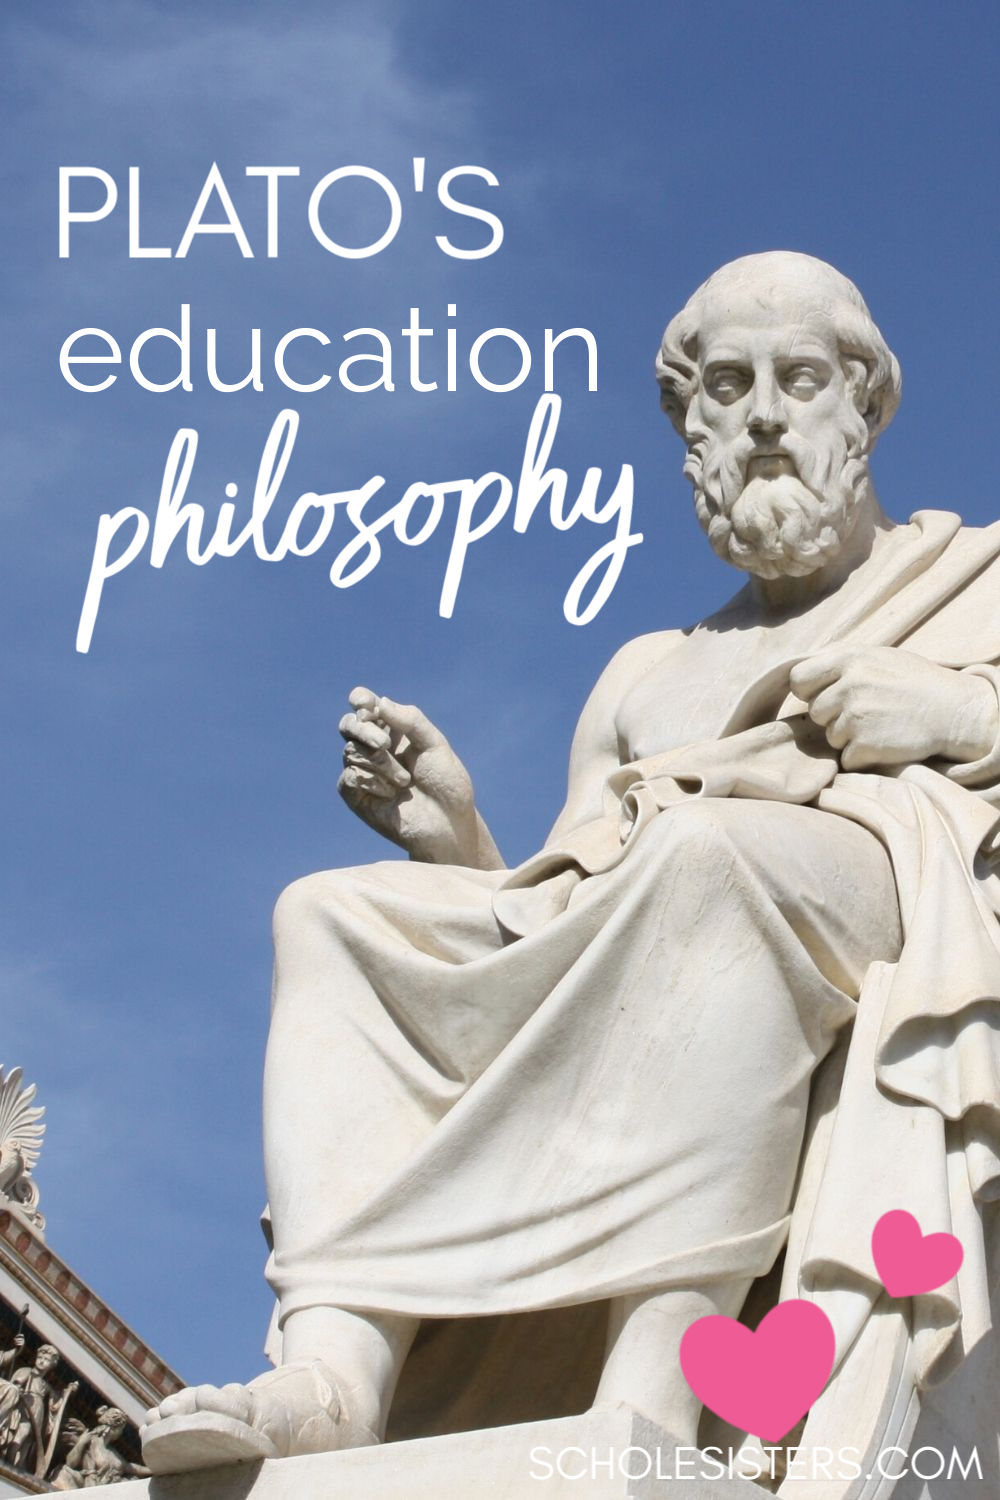 Plato's education philosophy - classical education studies